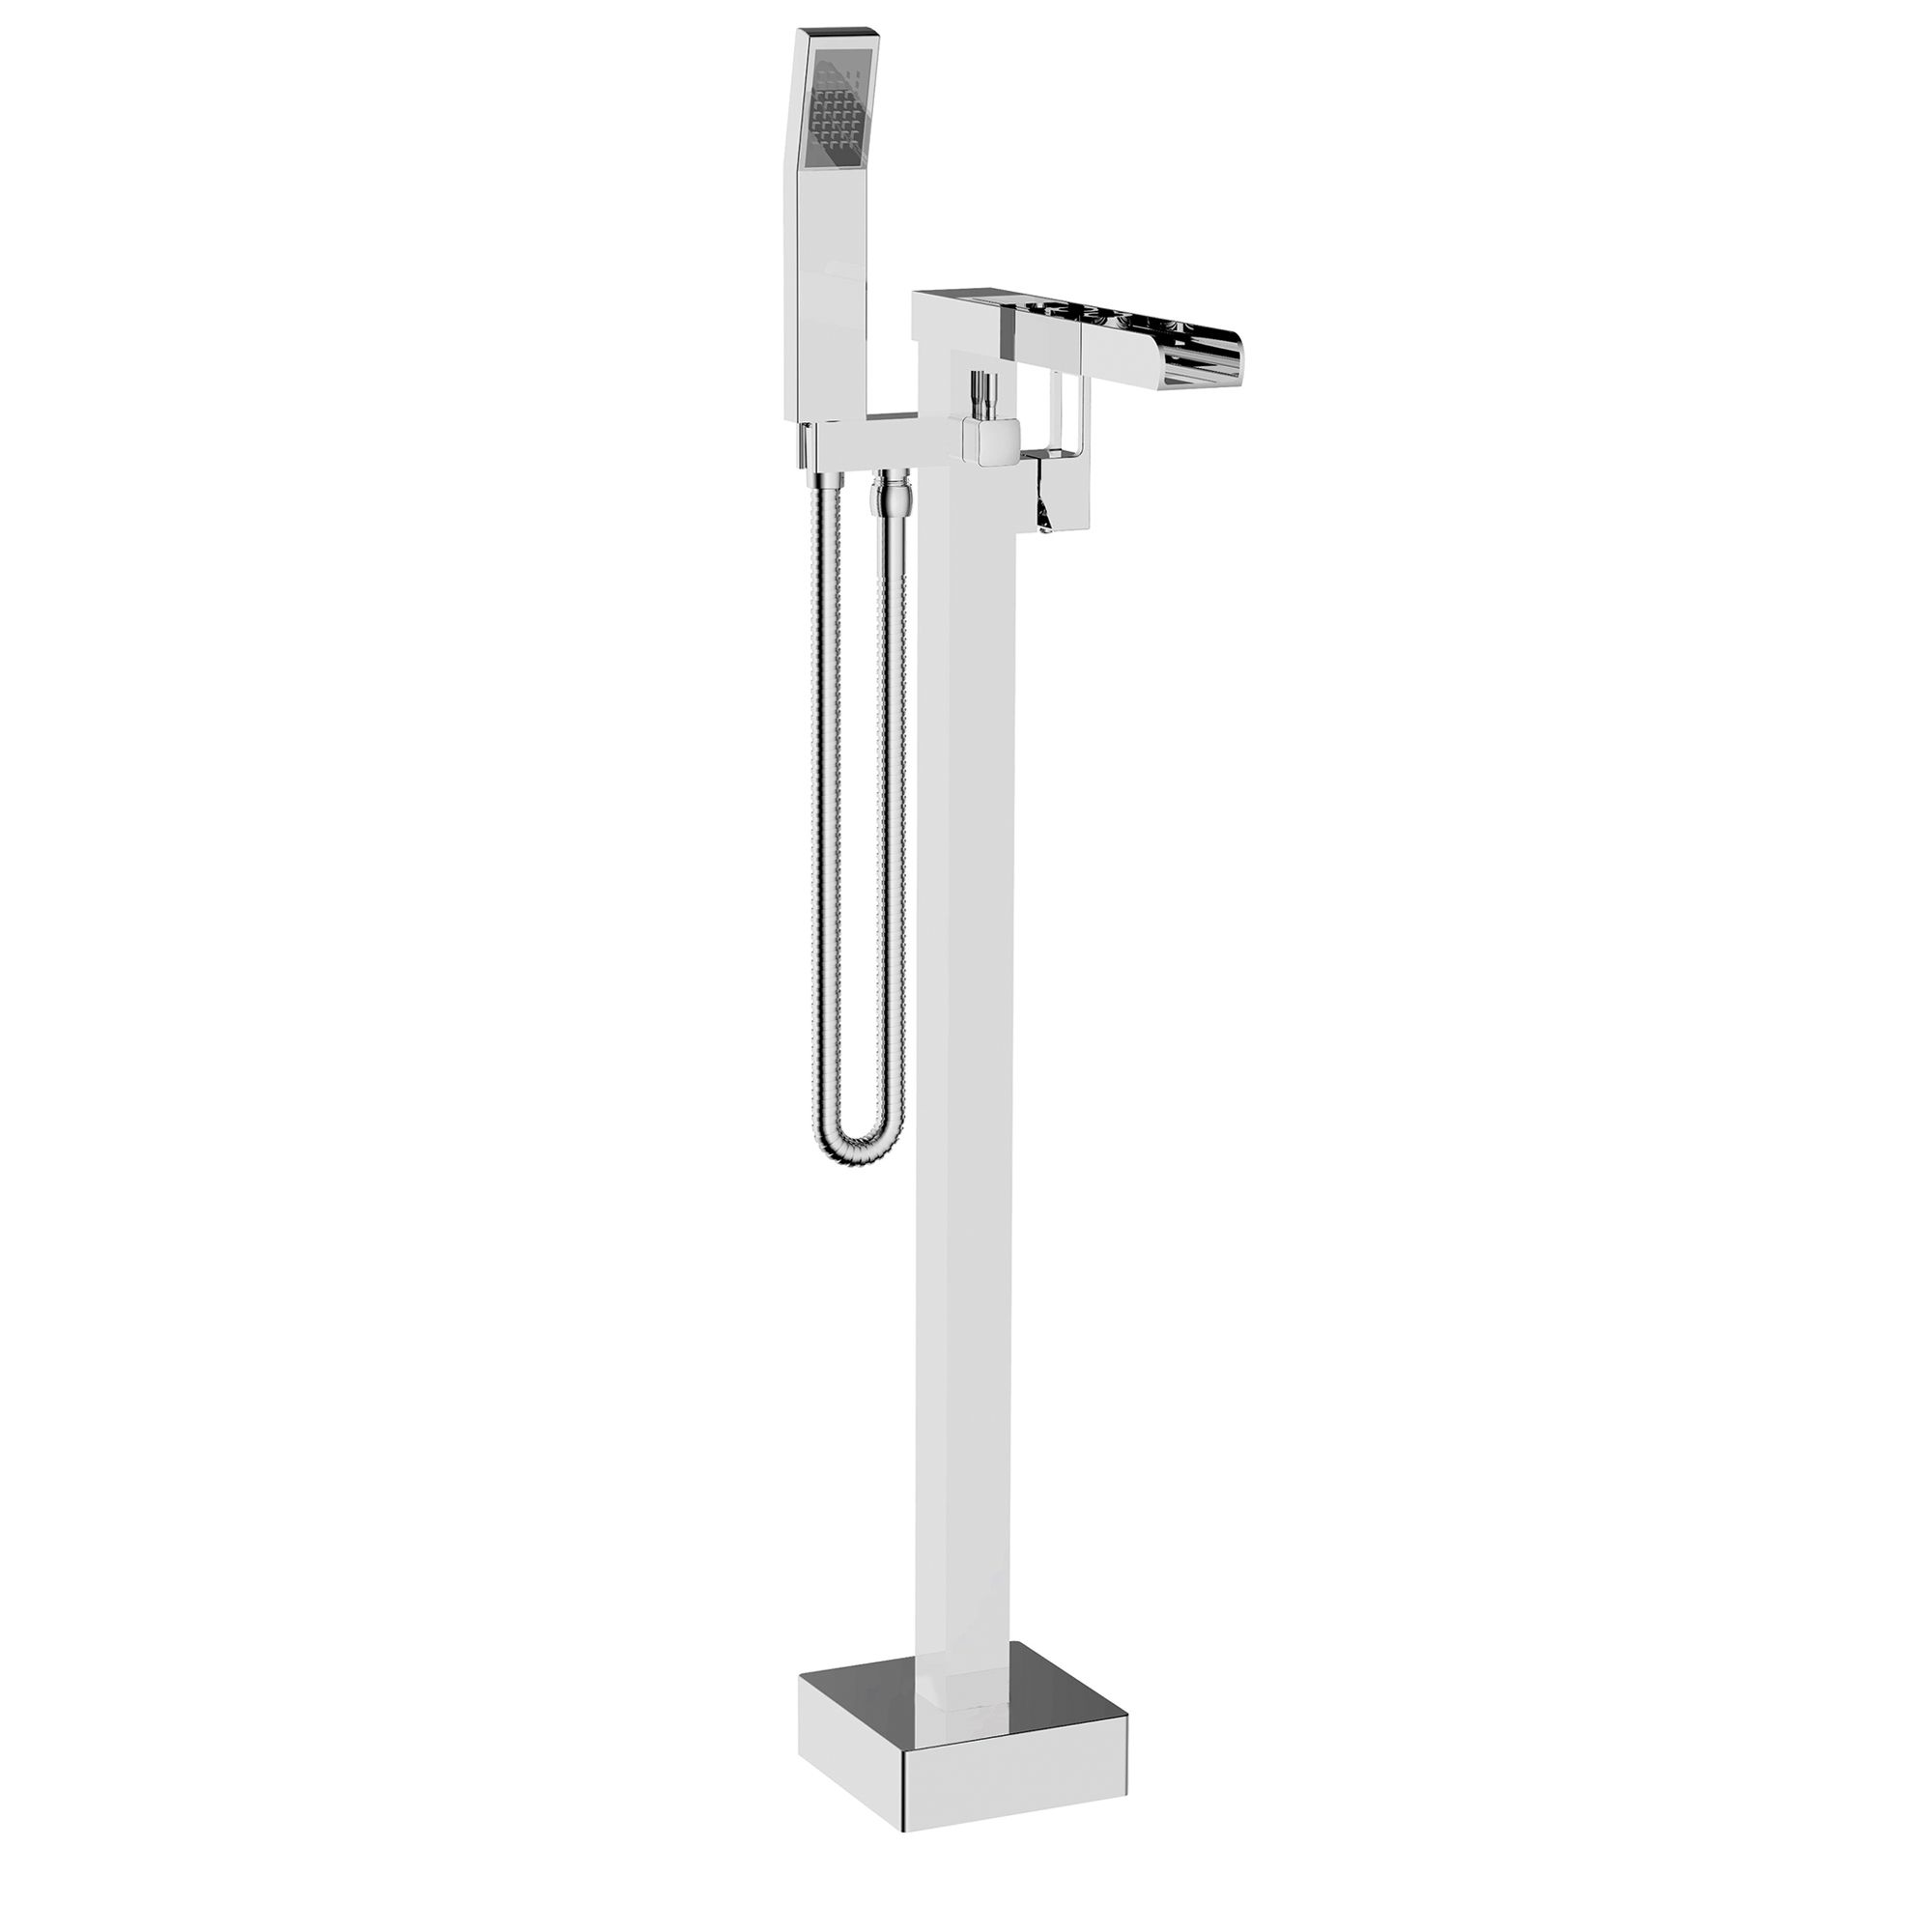 floor mounted bath filler with open mouth spout in chrome